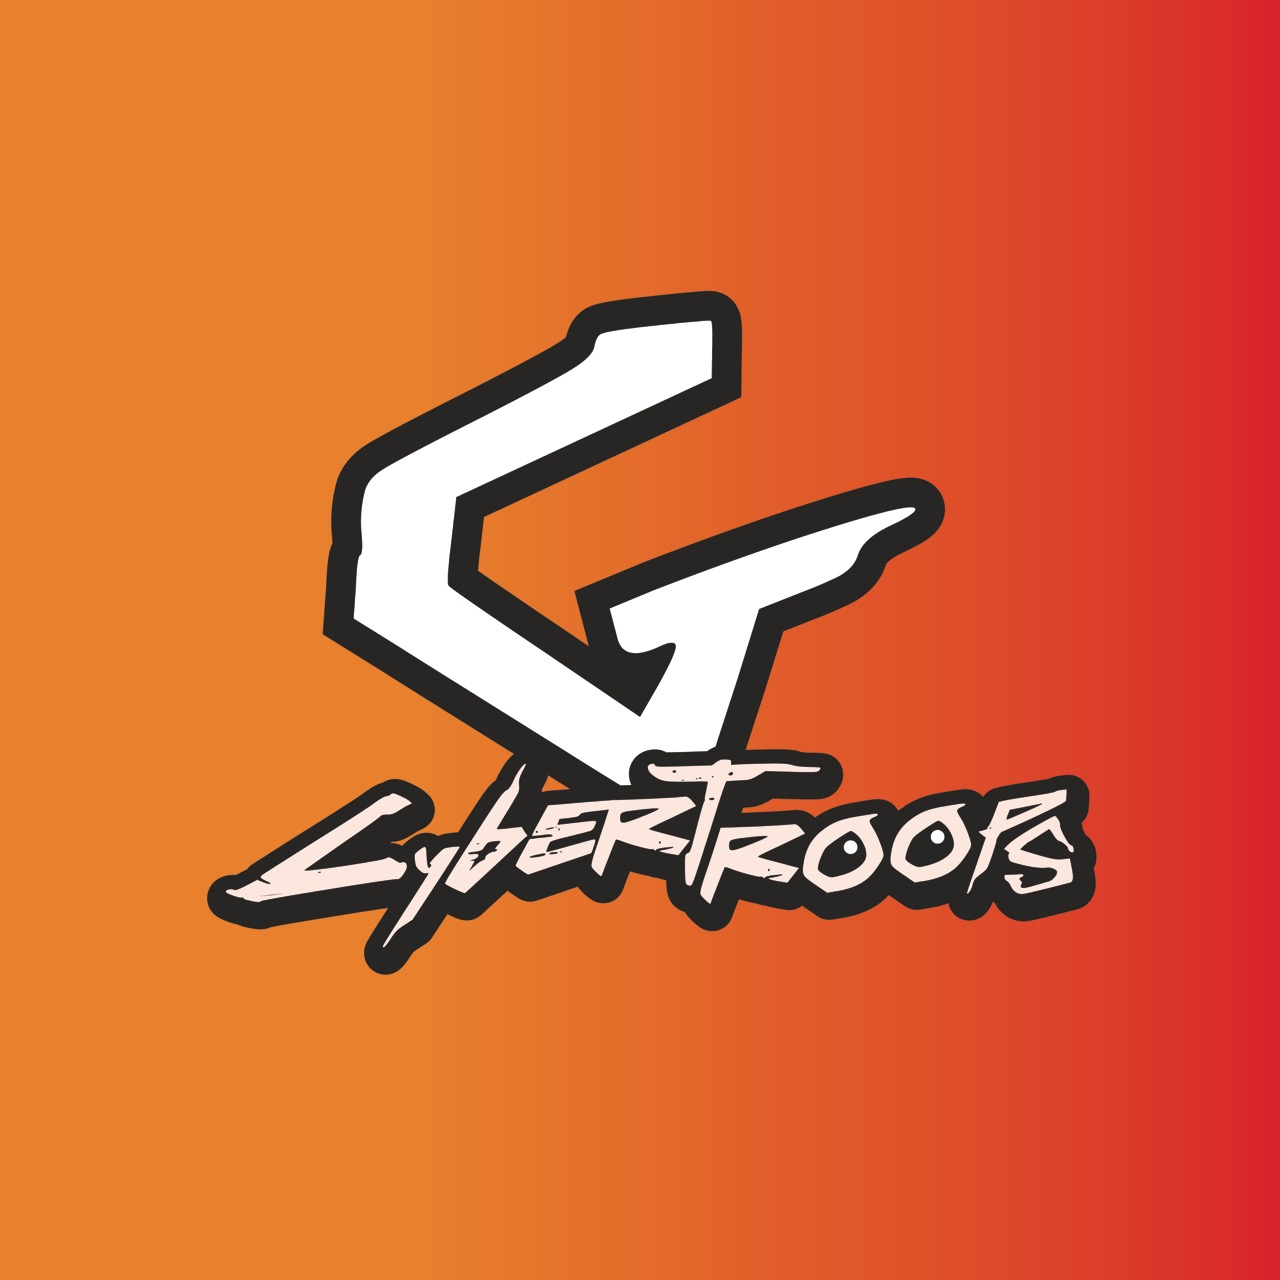 CyberTroops Esports